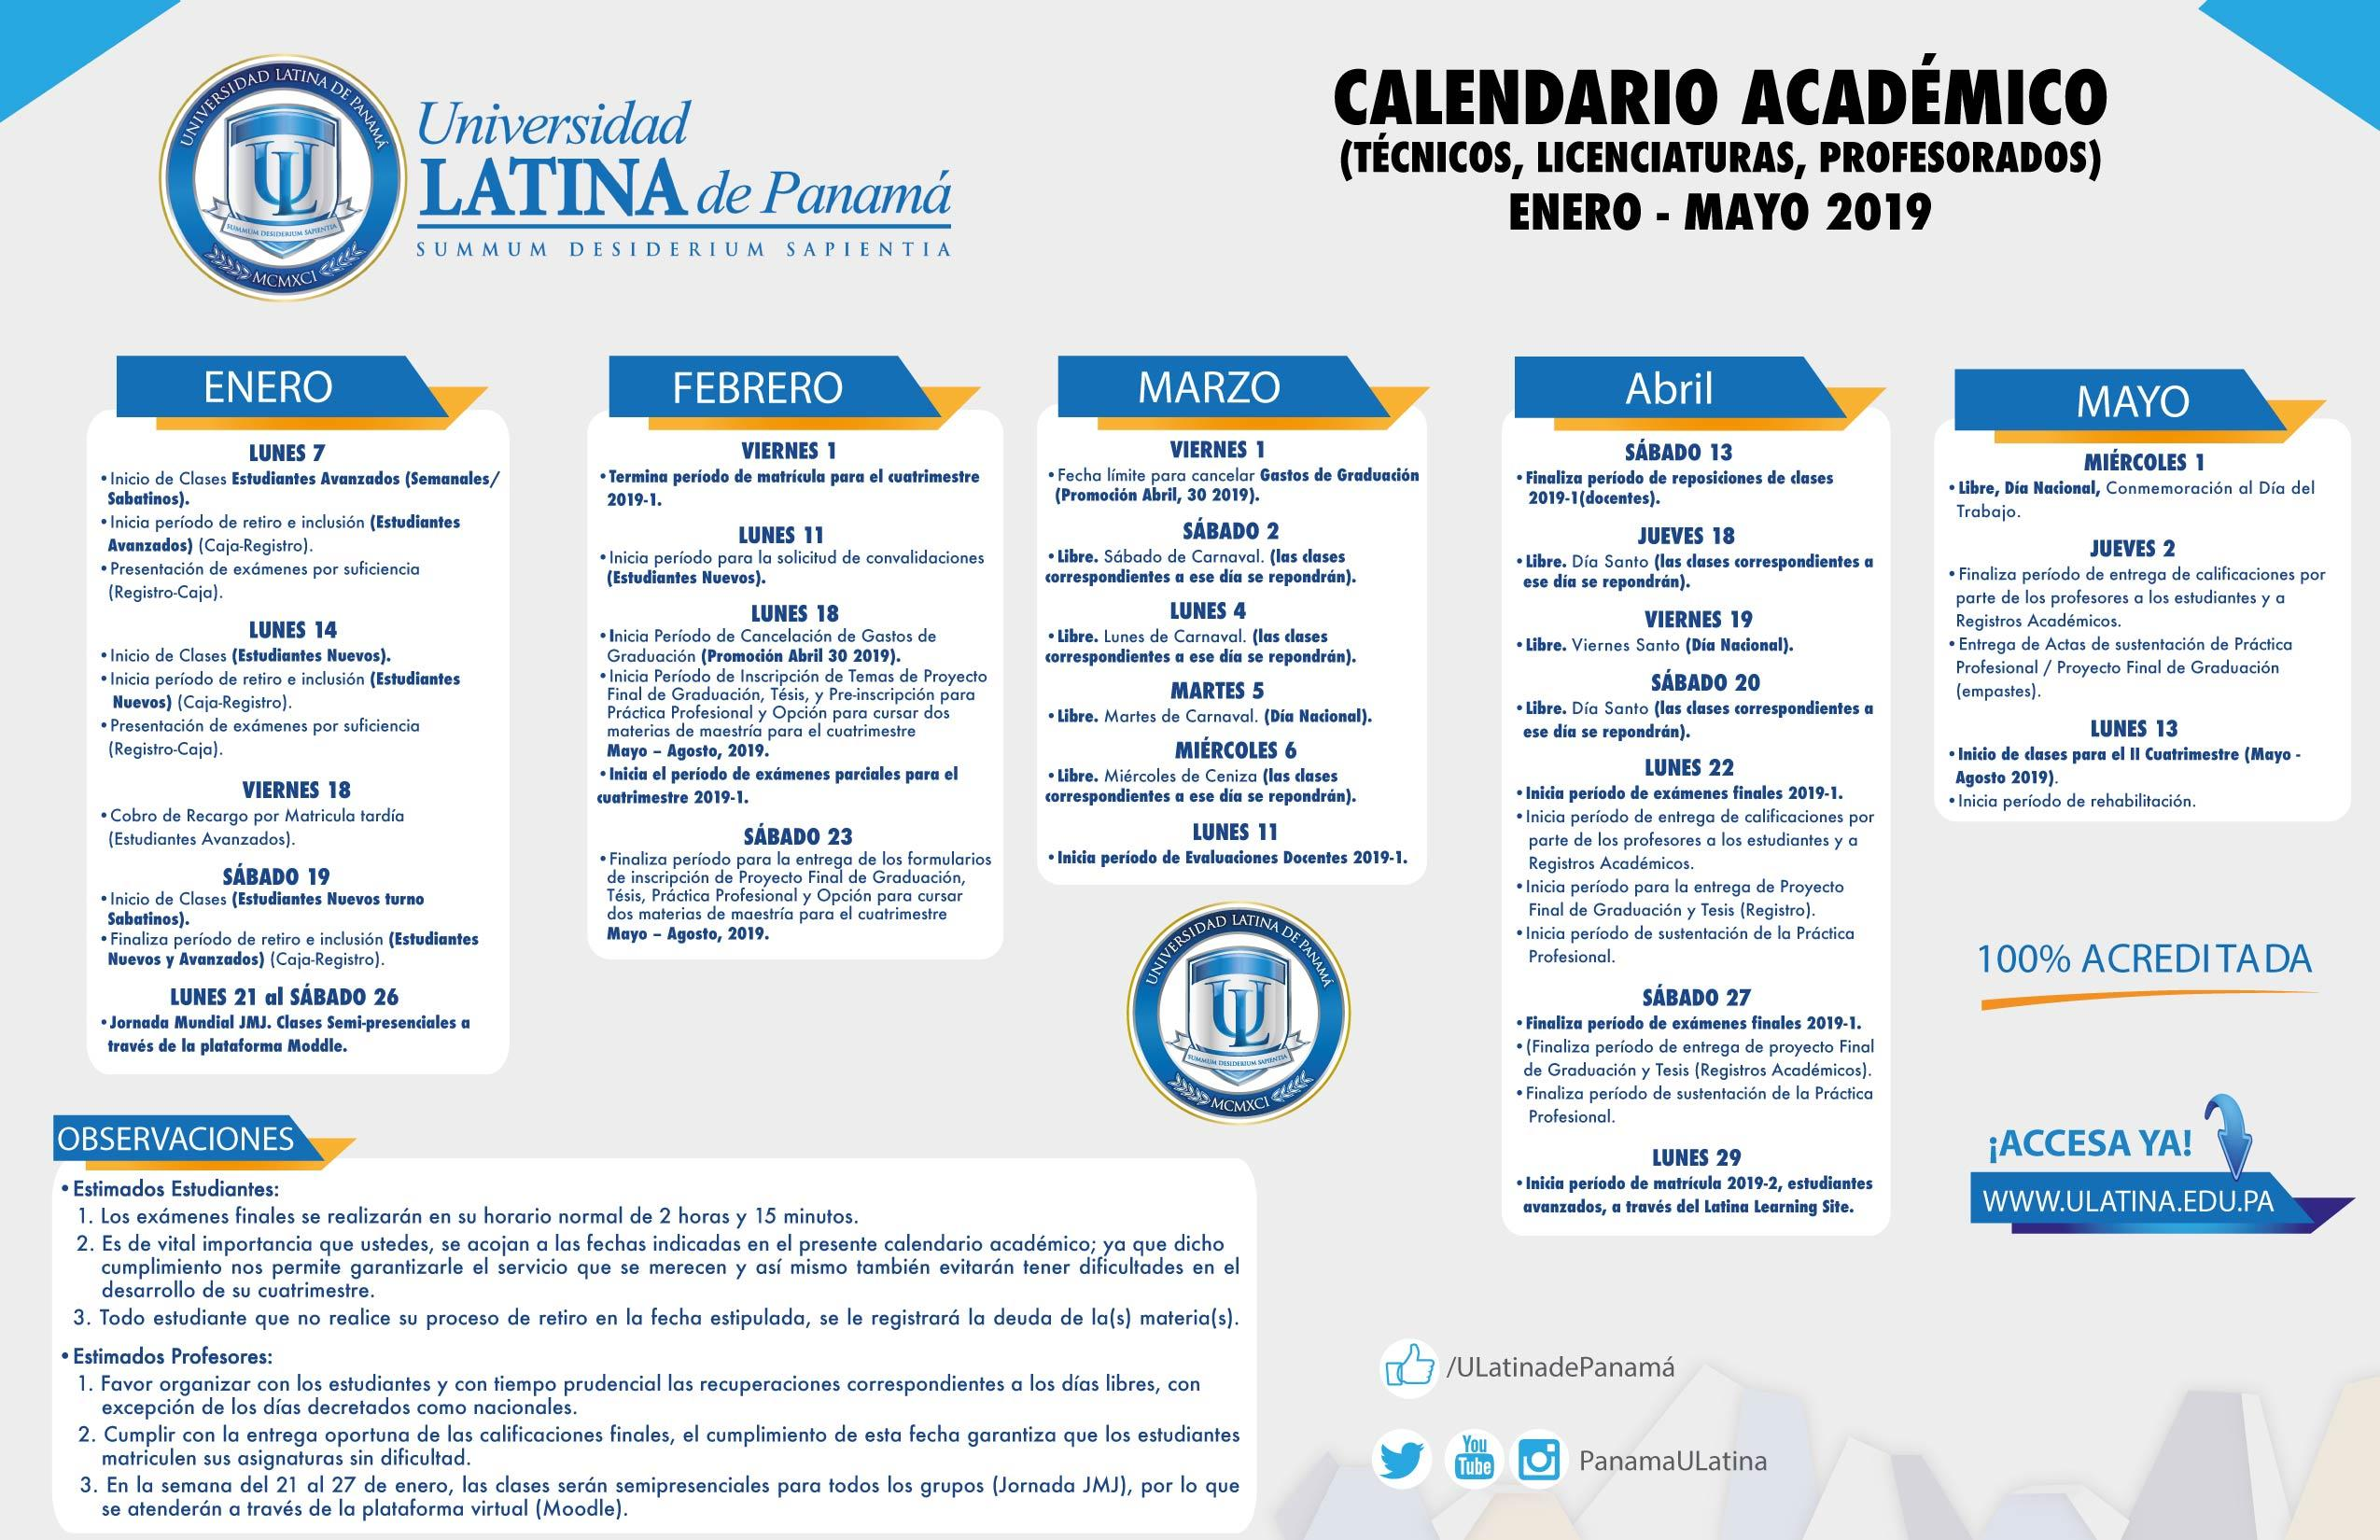 Calendario Escolar 2018 Panama.Calendarios Academicos Vida De Campus Universidad Latina